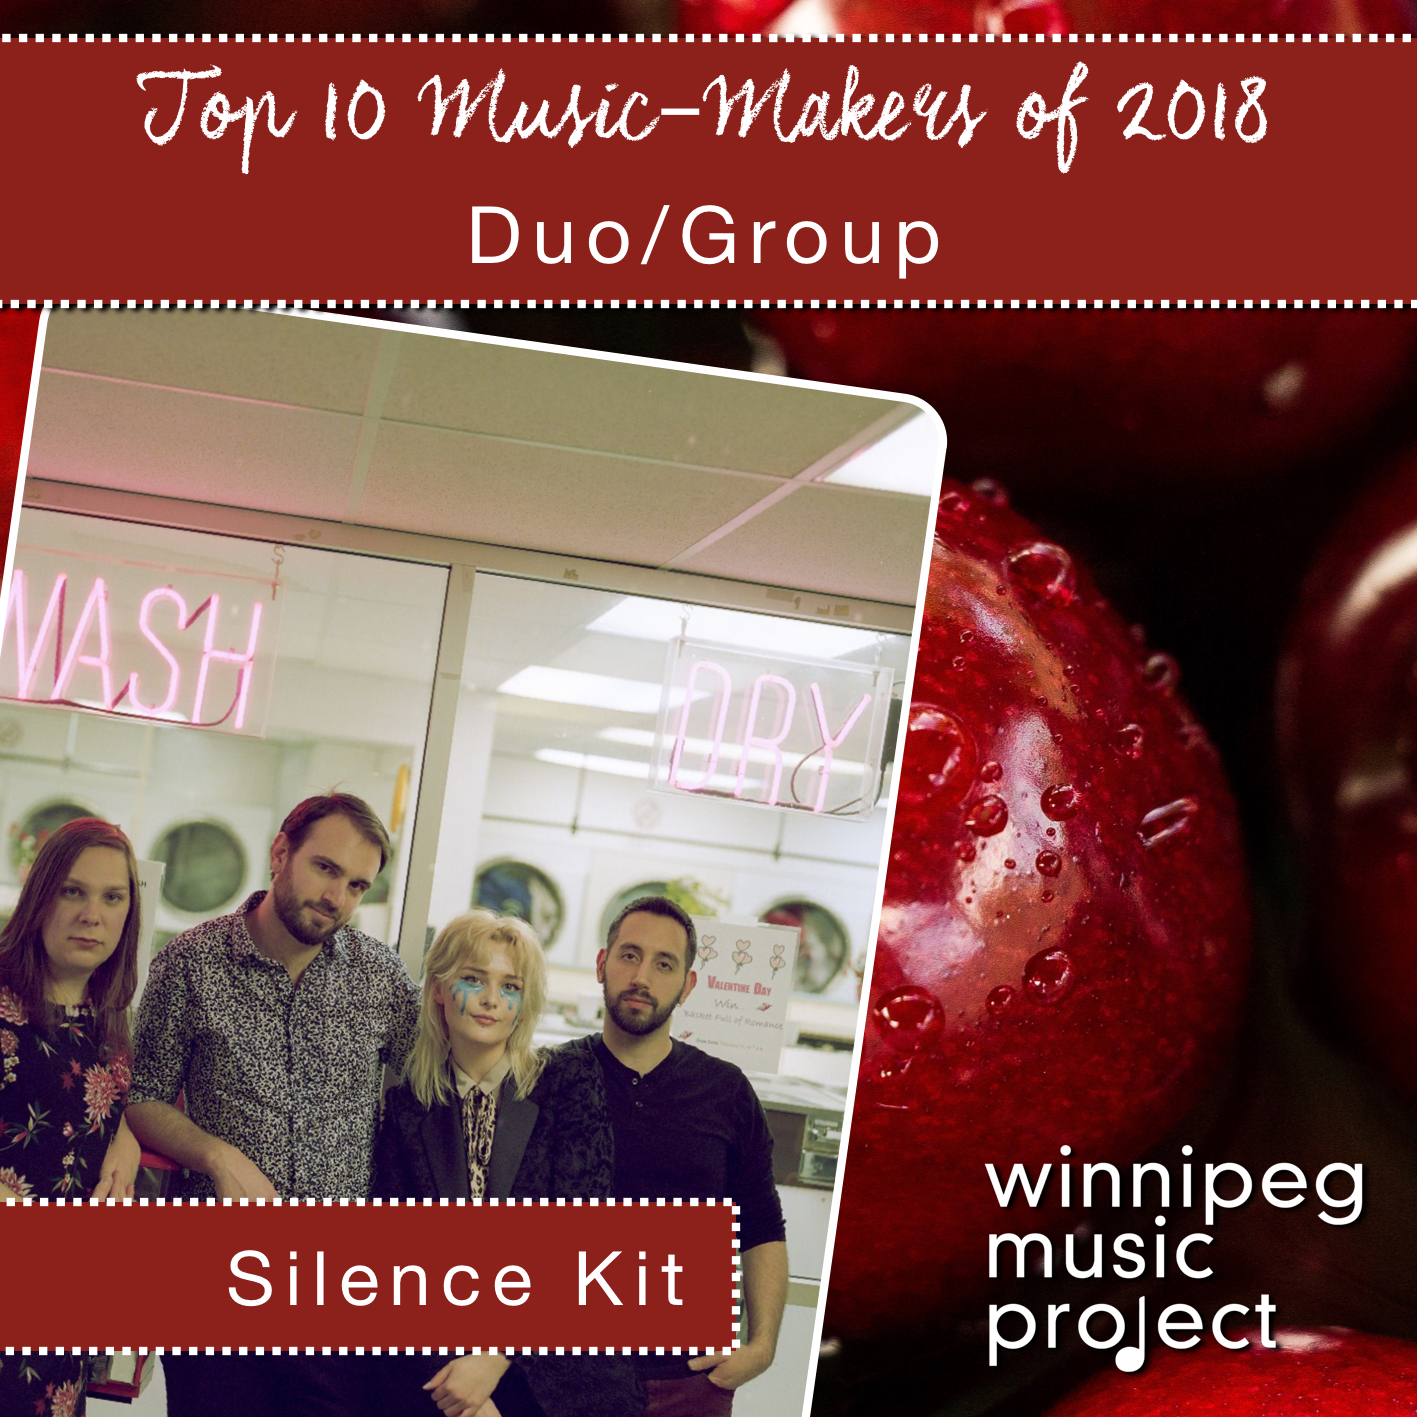 Silence Kit | Top 10 Music Makers of 2018 | Winnipeg Music Project